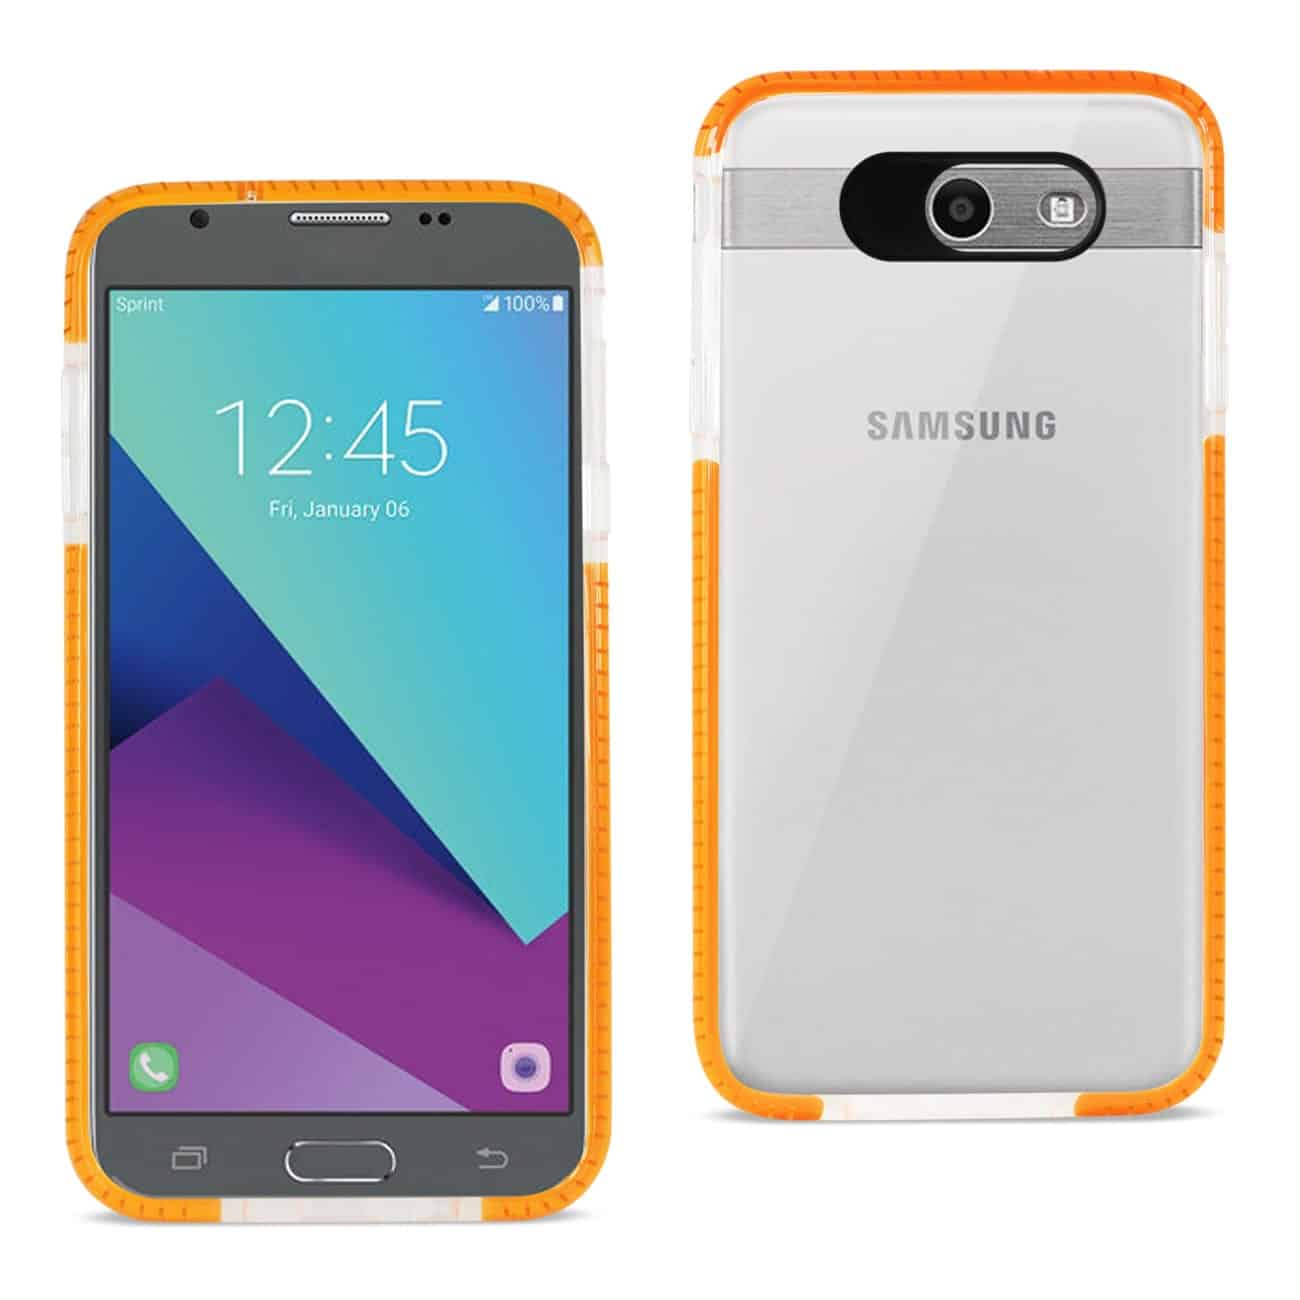 SAMSUNG GALAXY J7 V (2017) SOFT TRANSPARENT TPU CASE IN CLEAR ORANGE